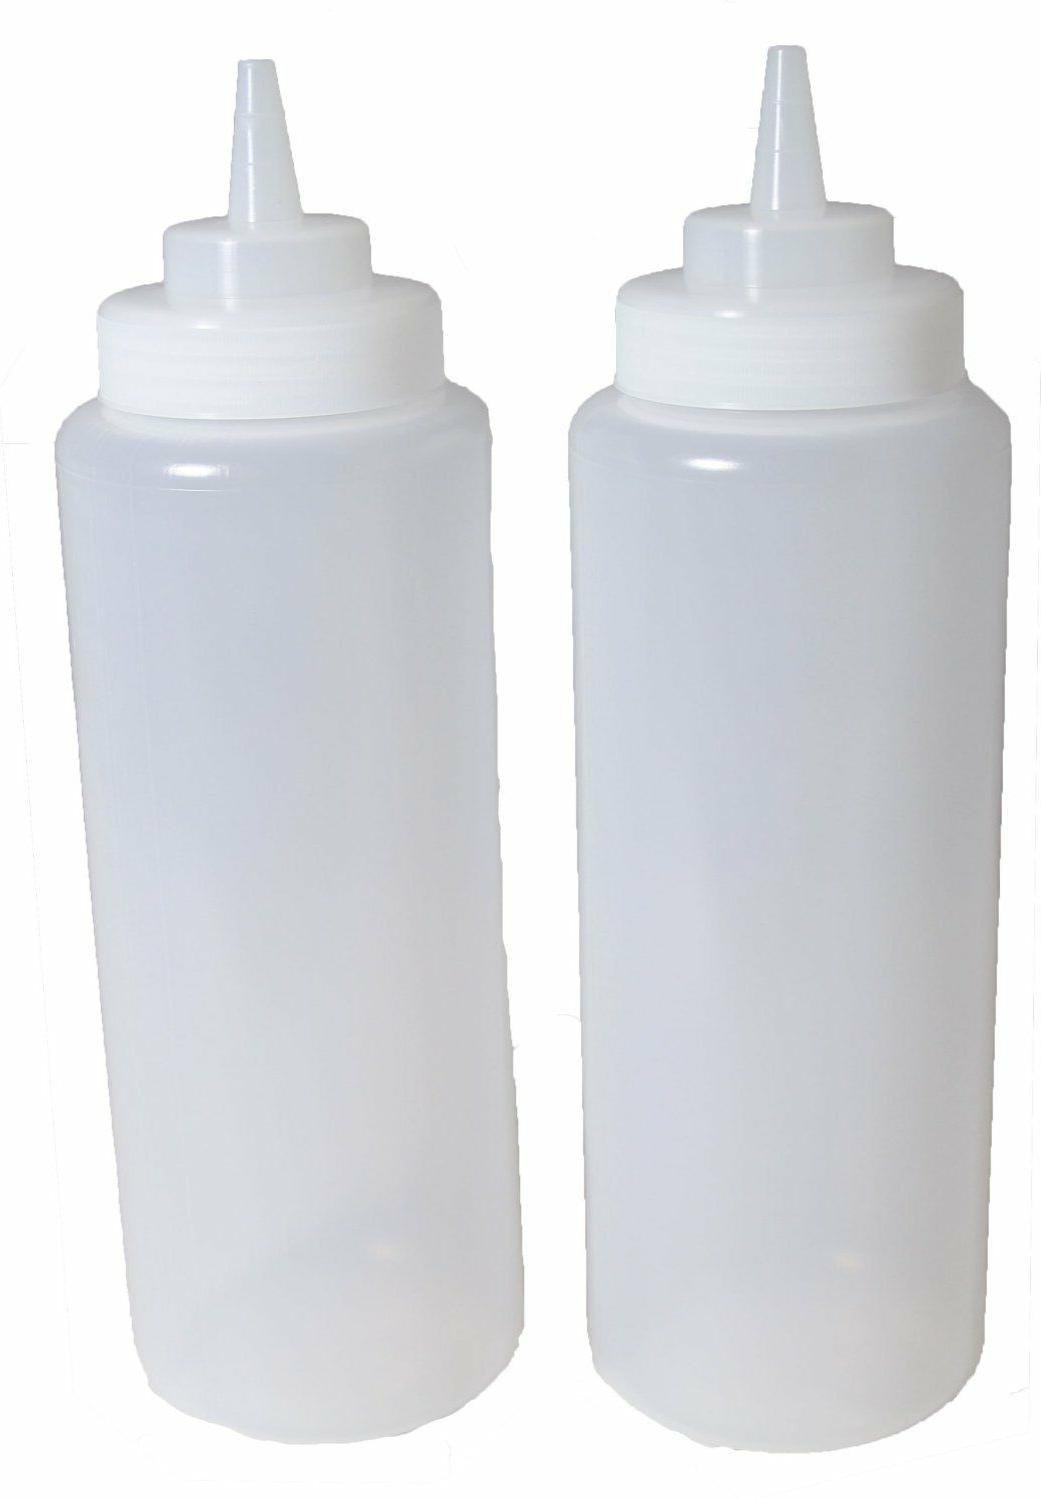 2x 32 oz ounce large clear squeeze